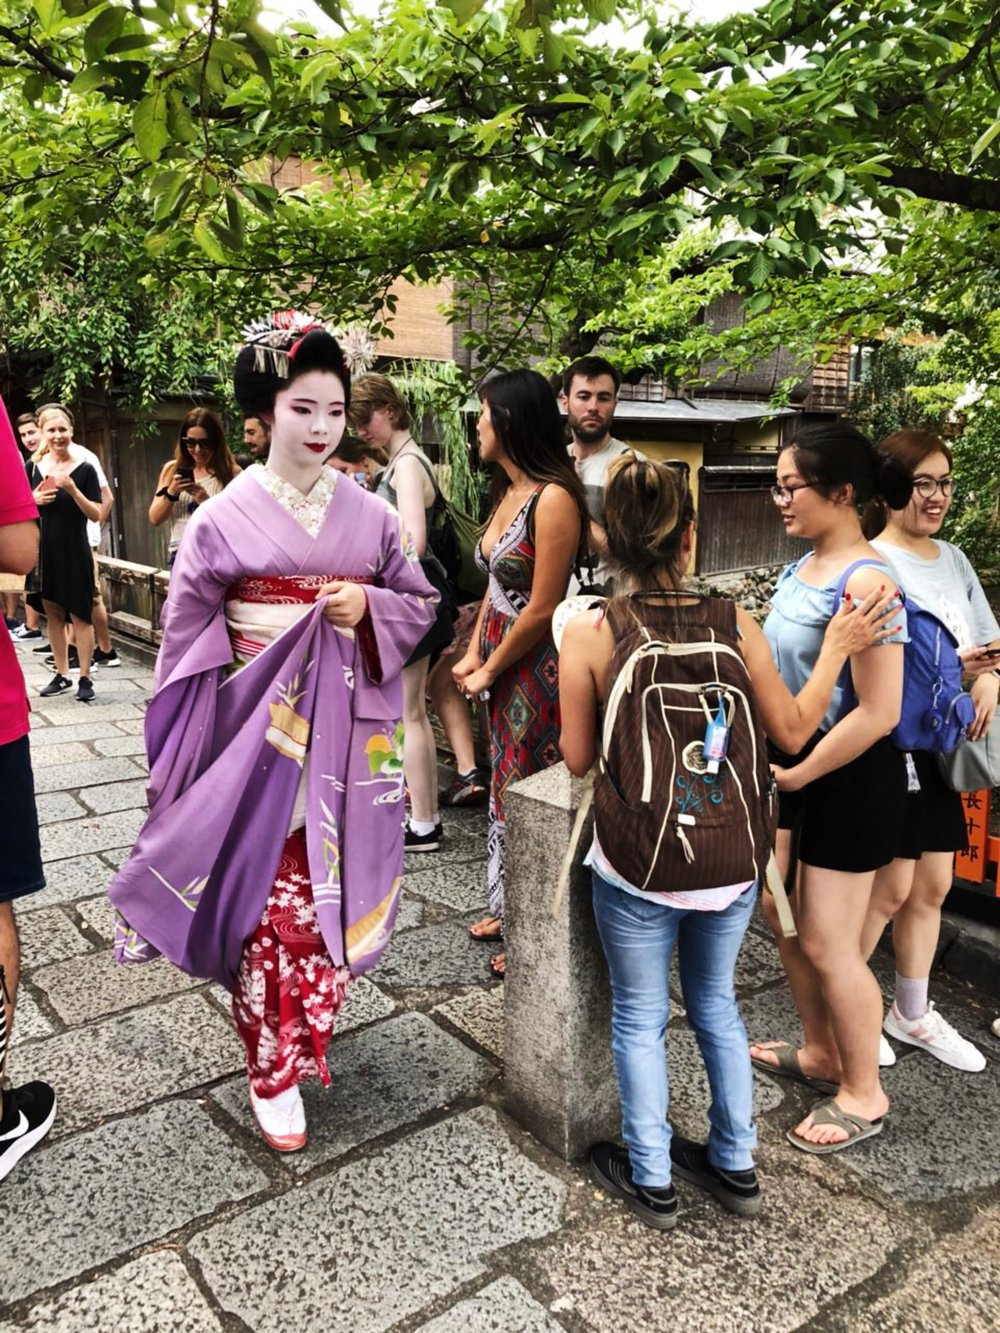 A trainee geisha, called a Maiko, hurrying to her appointment in Gion, Kyoto